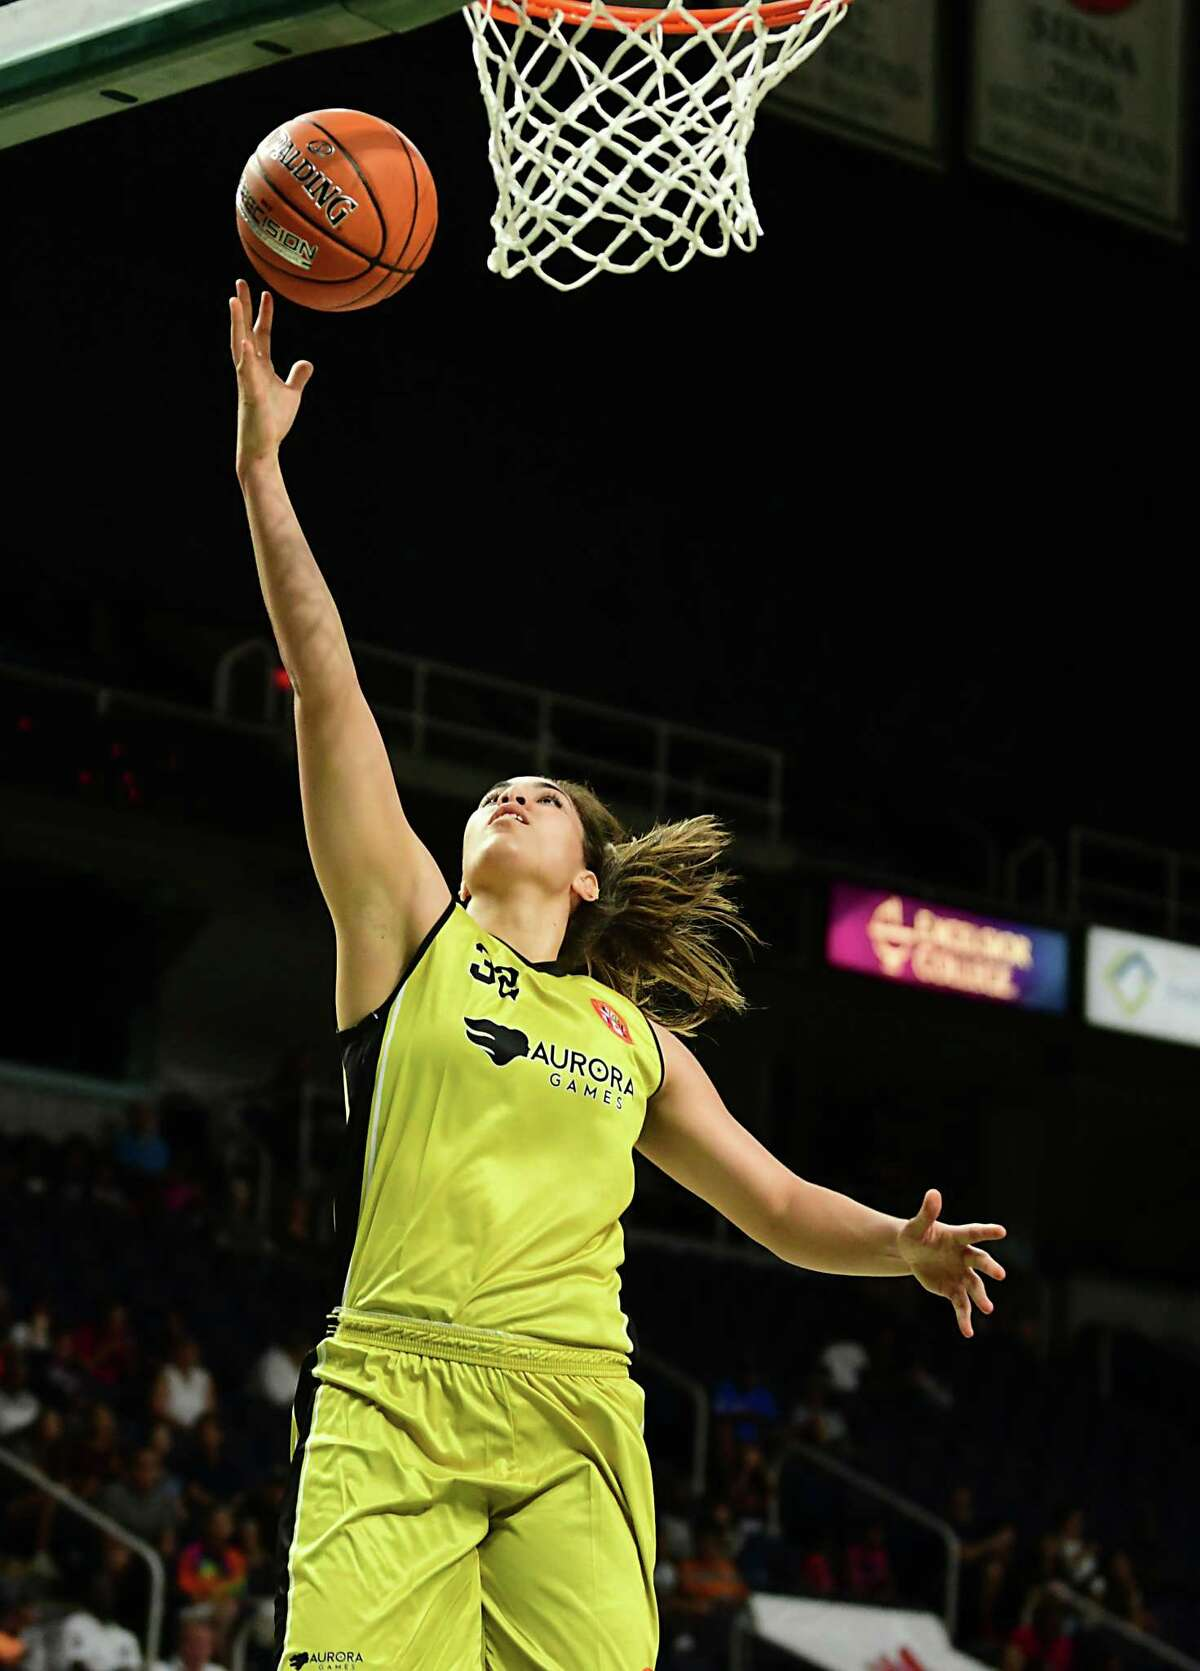 Team World's Kalani Purcell makes a layup during a basketball game against Team Americas in the Aurora Games at the Times Union Center on Tuesday, Aug. 20, 2019 in Albany, N.Y. (Lori Van Buren/Times Union)